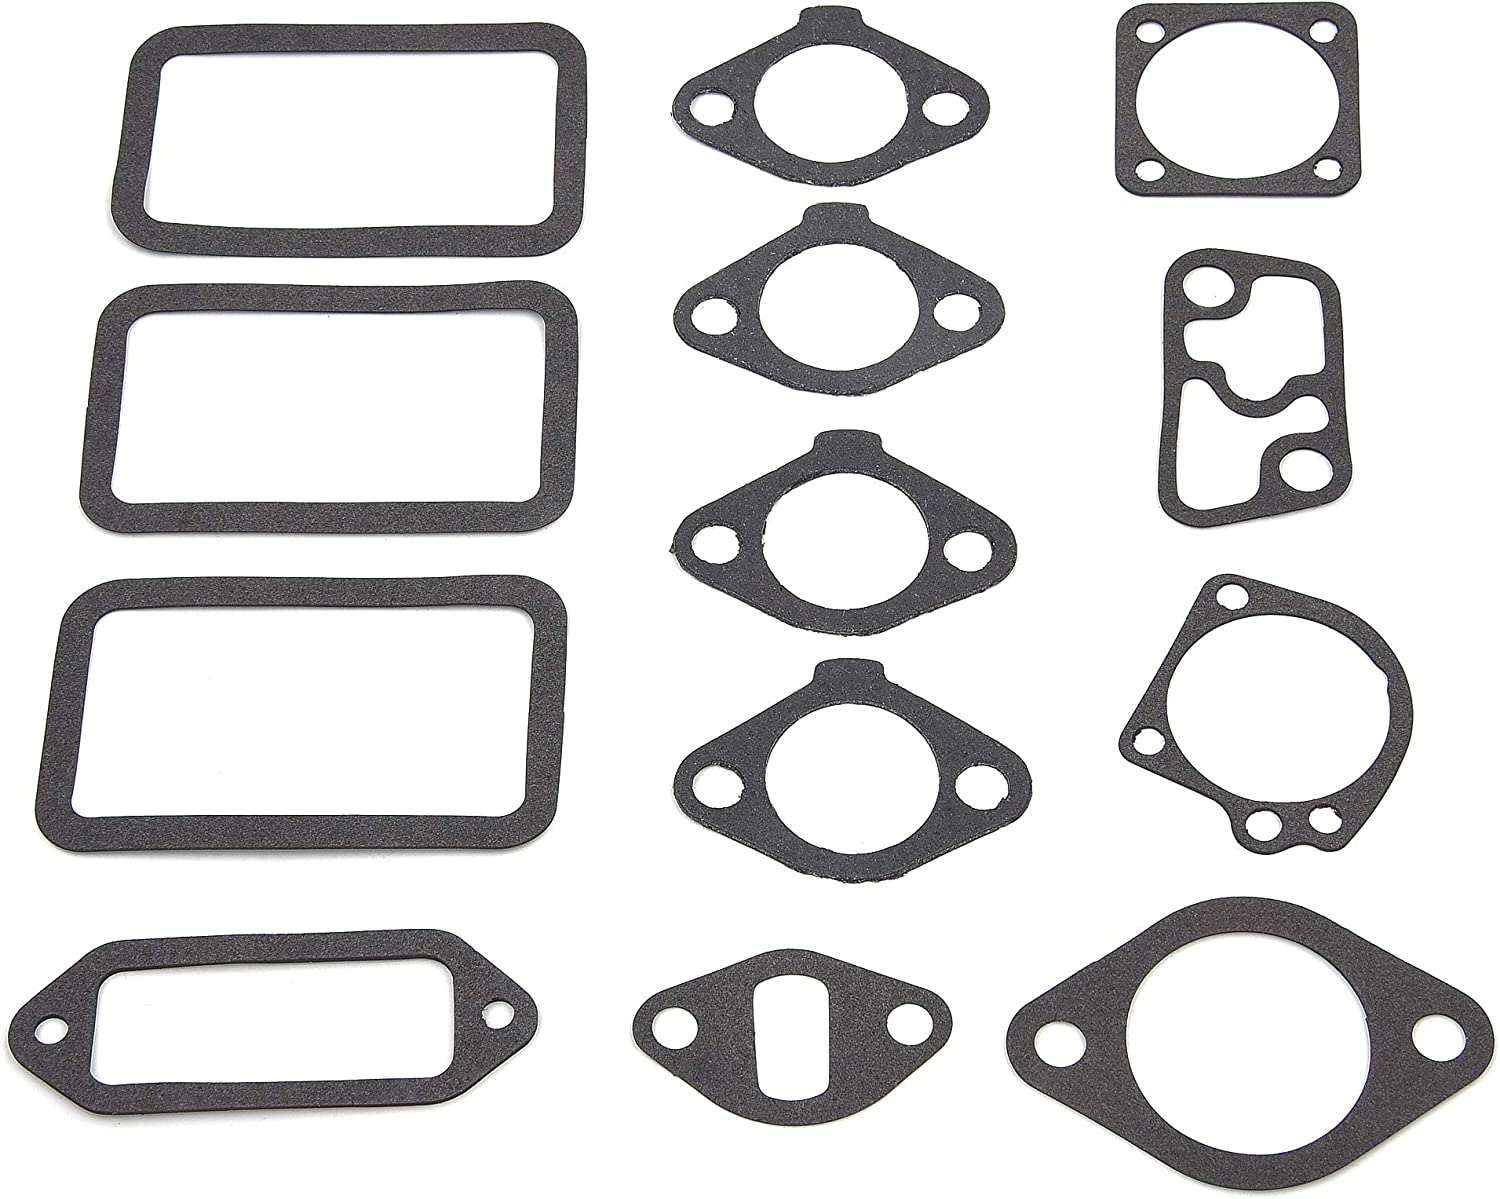 25 755 37-S Gasket Set With Seals Replaces Replacement for M18 M20 KT17 KT19 KT21